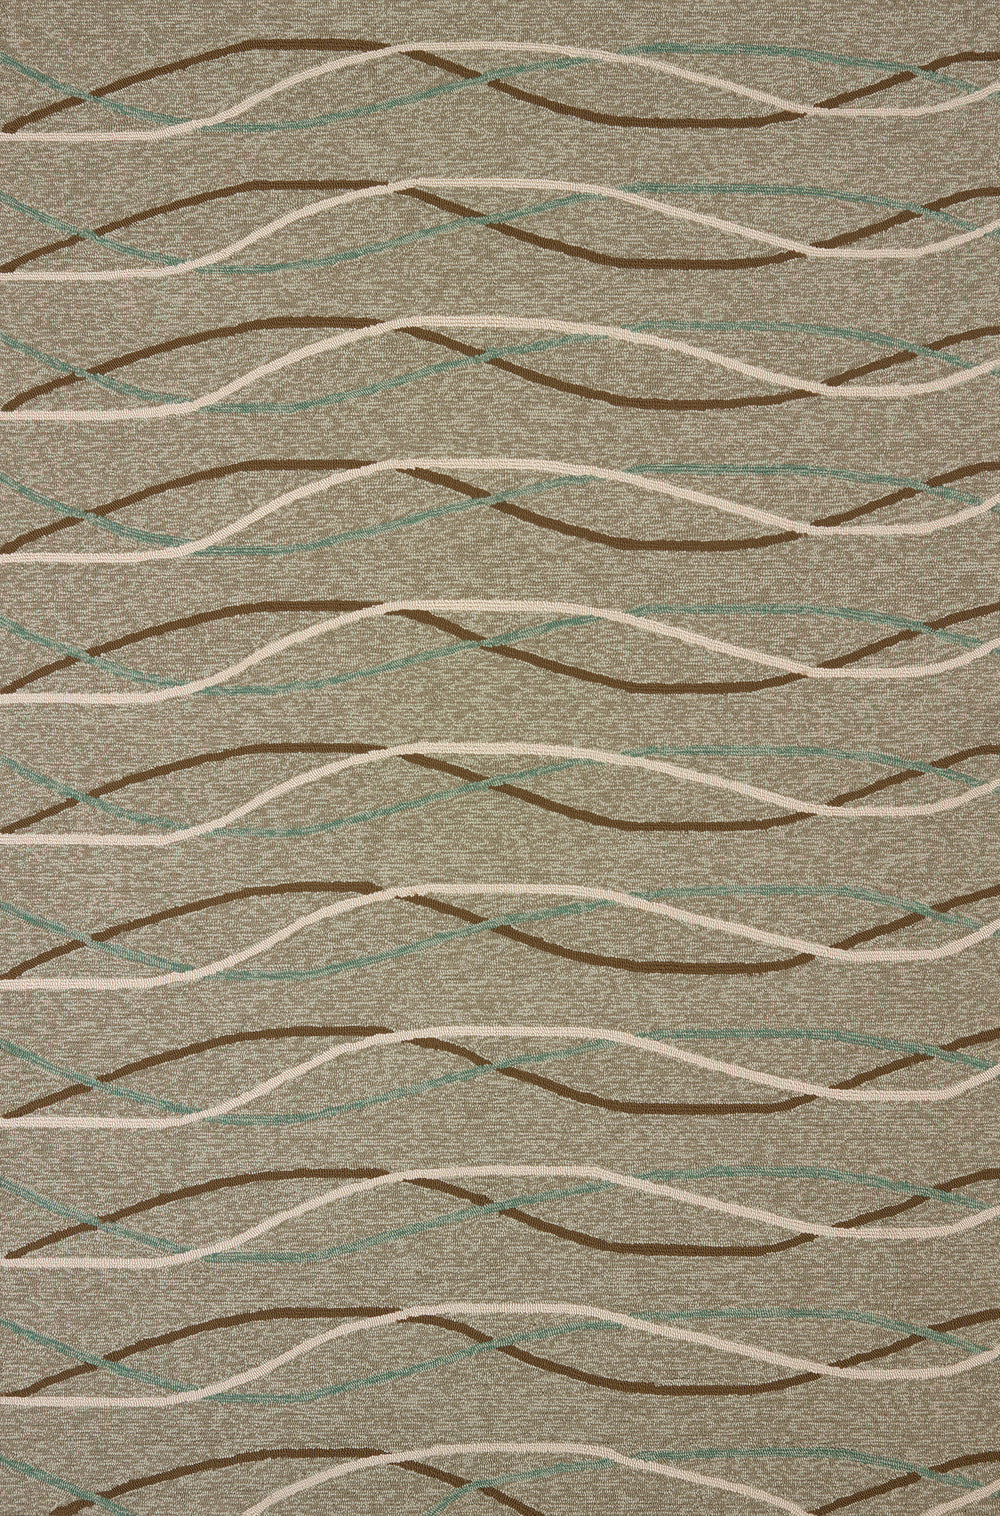 United Weaver Atrium Breezeway Area Rug